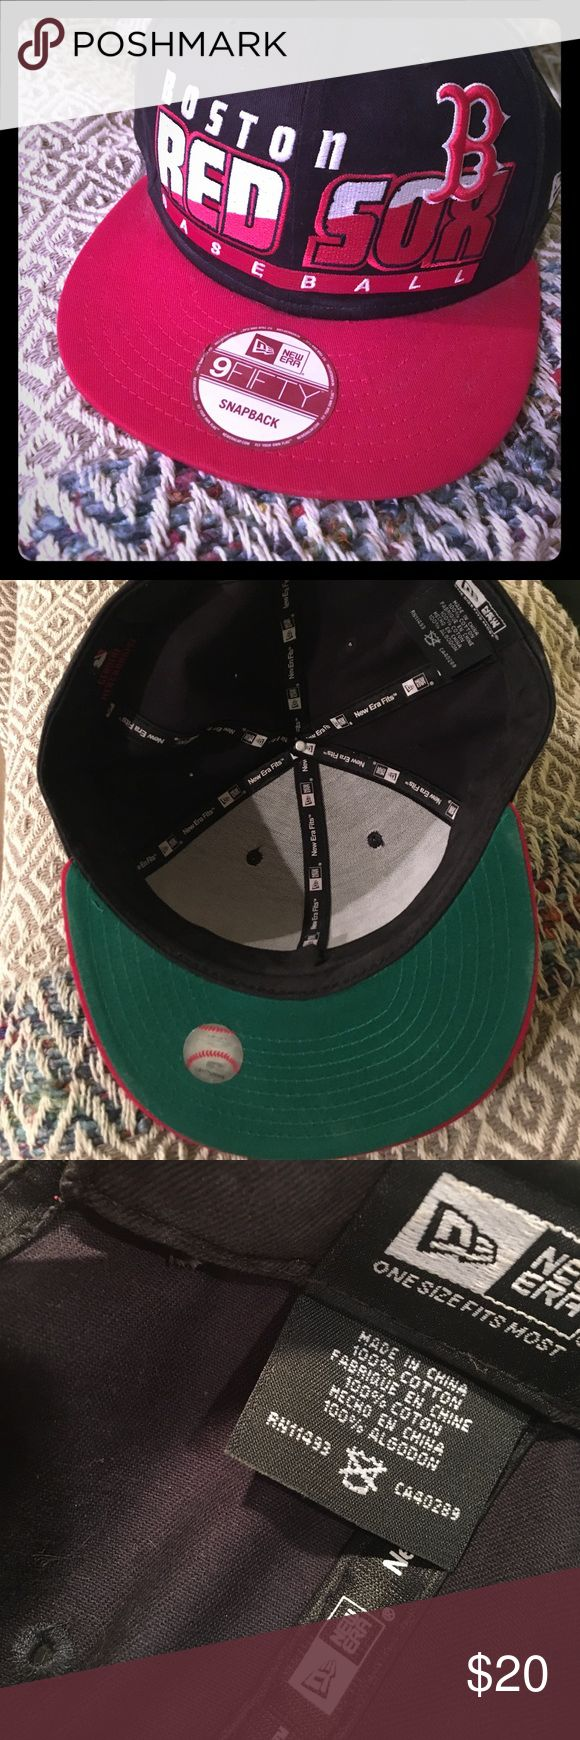 Boston Red Sox hat snapback Nice hat. Never worn. A little dusty from sitting on my son's bookshelf :) all stickers intact. New era, genuine mlb merchandise, 9fifty snapback. Spring training special! Go Sox ⚾️ New Era Accessories Hats